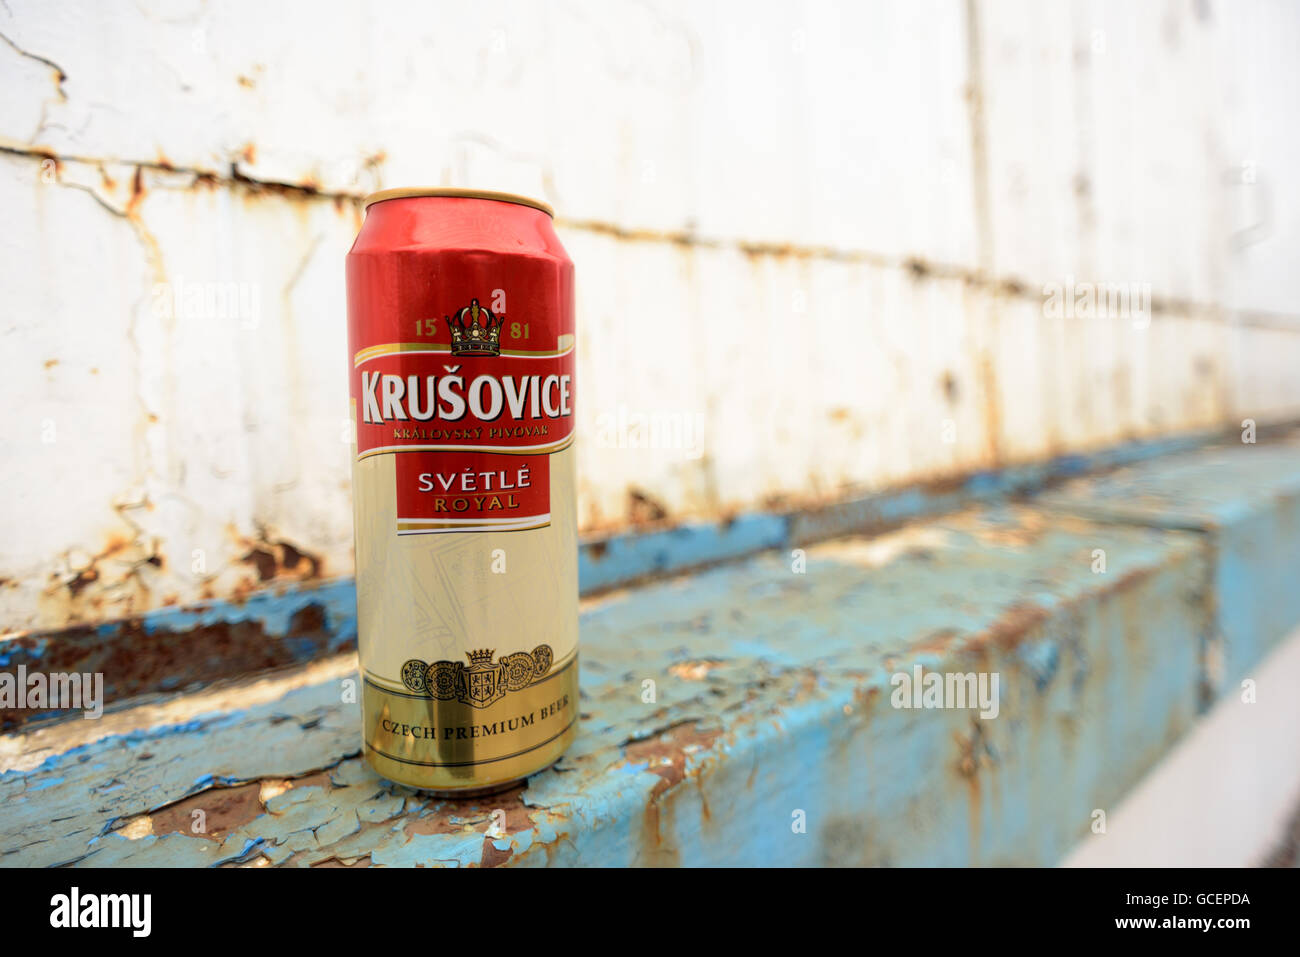 Unopened can of Krusovice 1581 Svetle Royal beer with a rusty metal background in blue and white - Stock Image